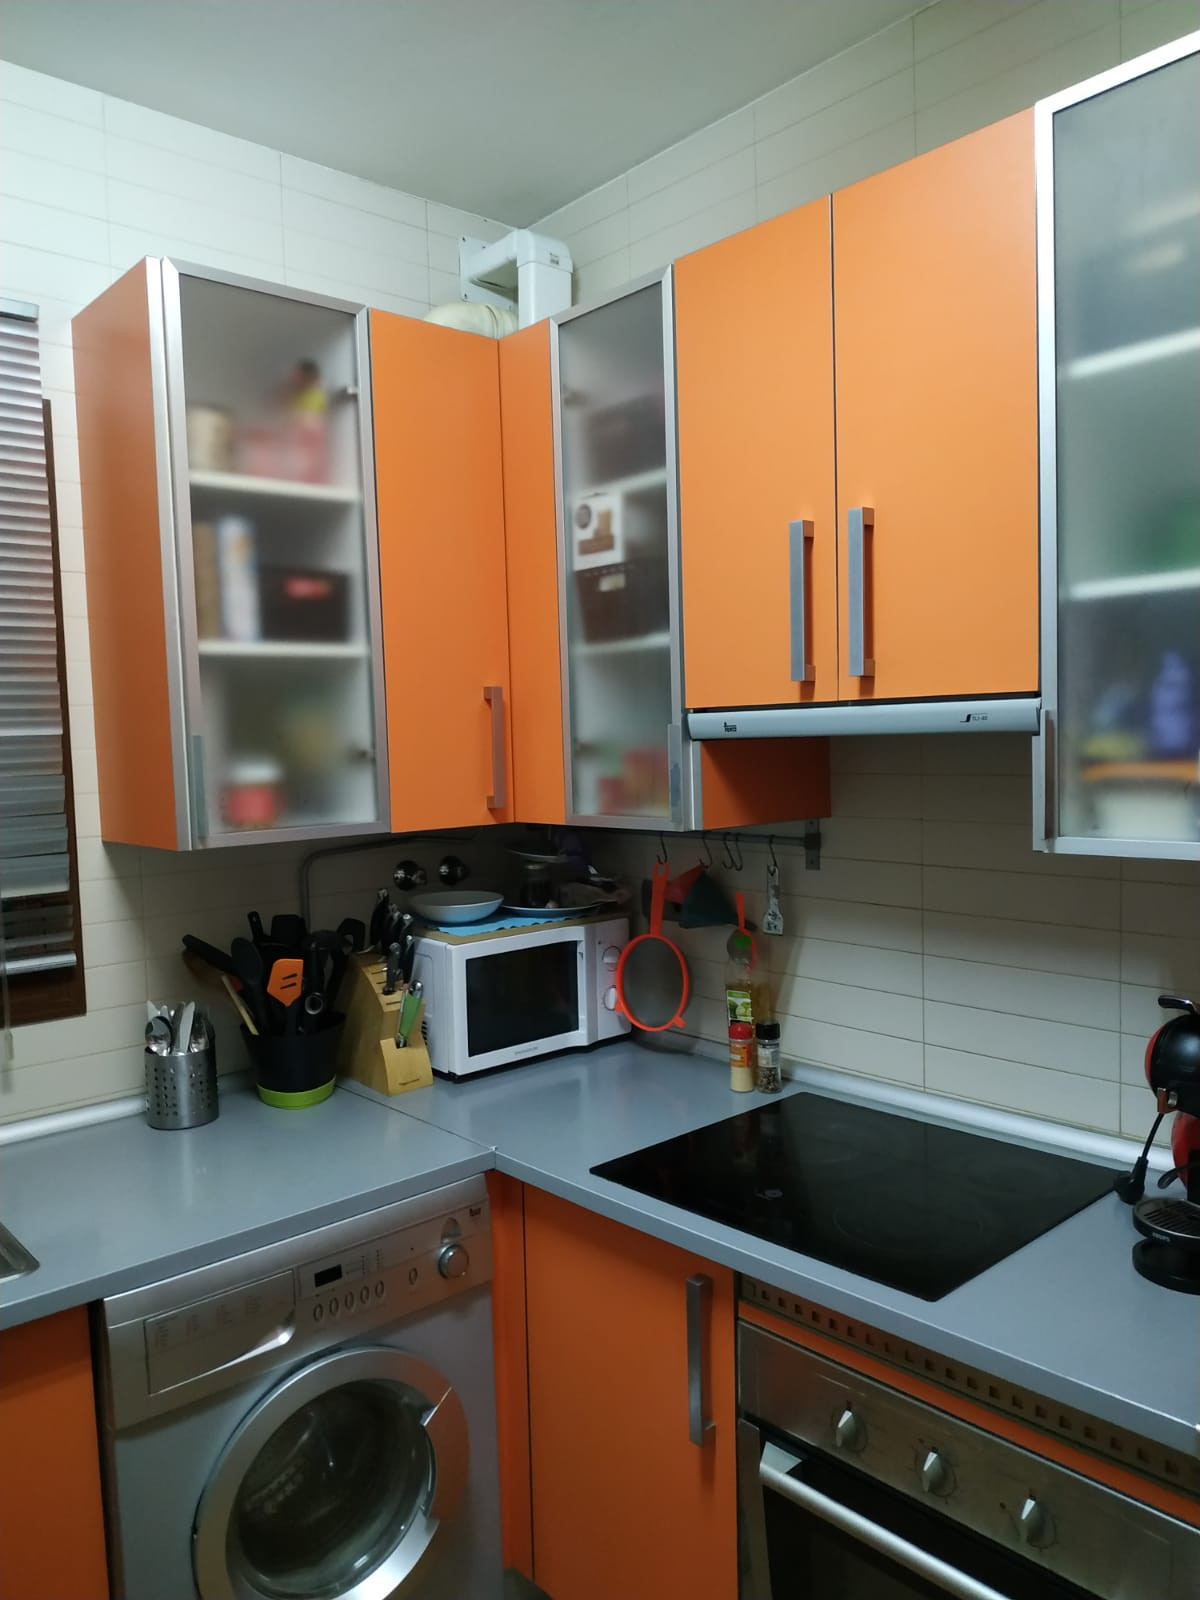 APARTMENT IN THE HEART OF ALORA, A SHORT DISTANCE FROM THE CENTRAL PLAZA AND SHOPS. THIS CHARMING AP,Spain